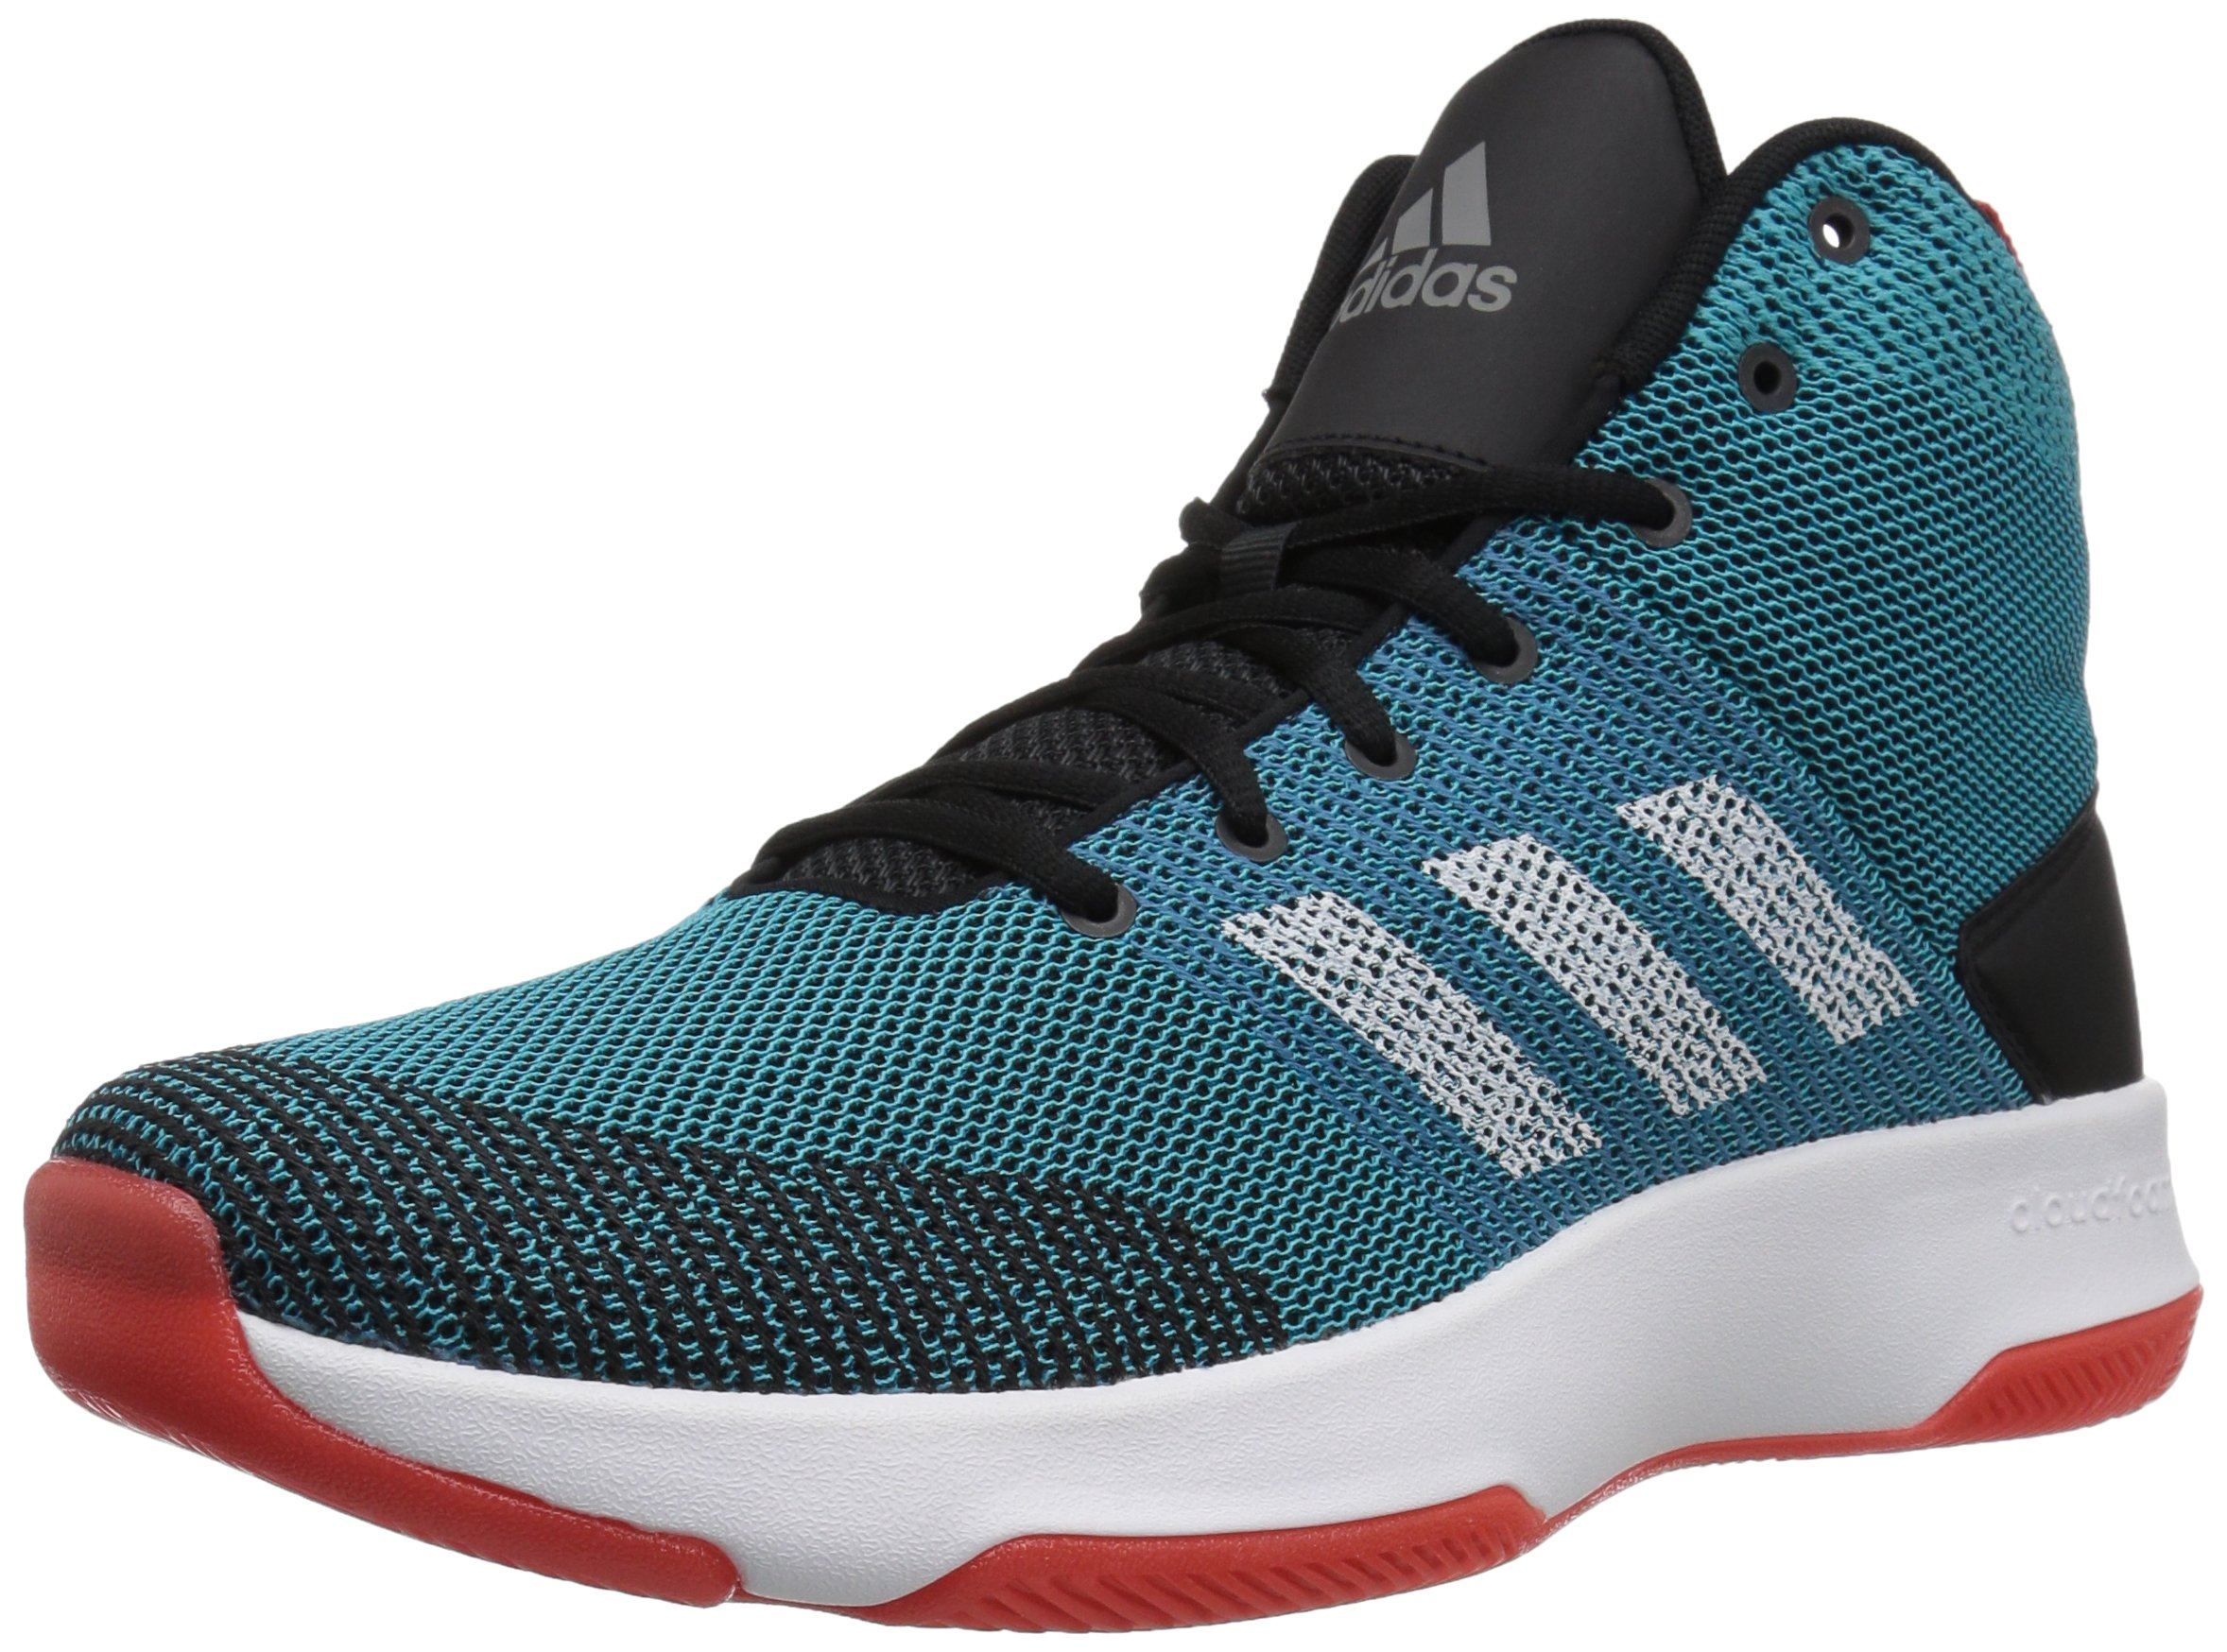 a72cb1a4cc188 adidas Neo Men's CF Executor Mid Basketball-Shoes, Mystery  Petrol/White/Black, 9 Medium US